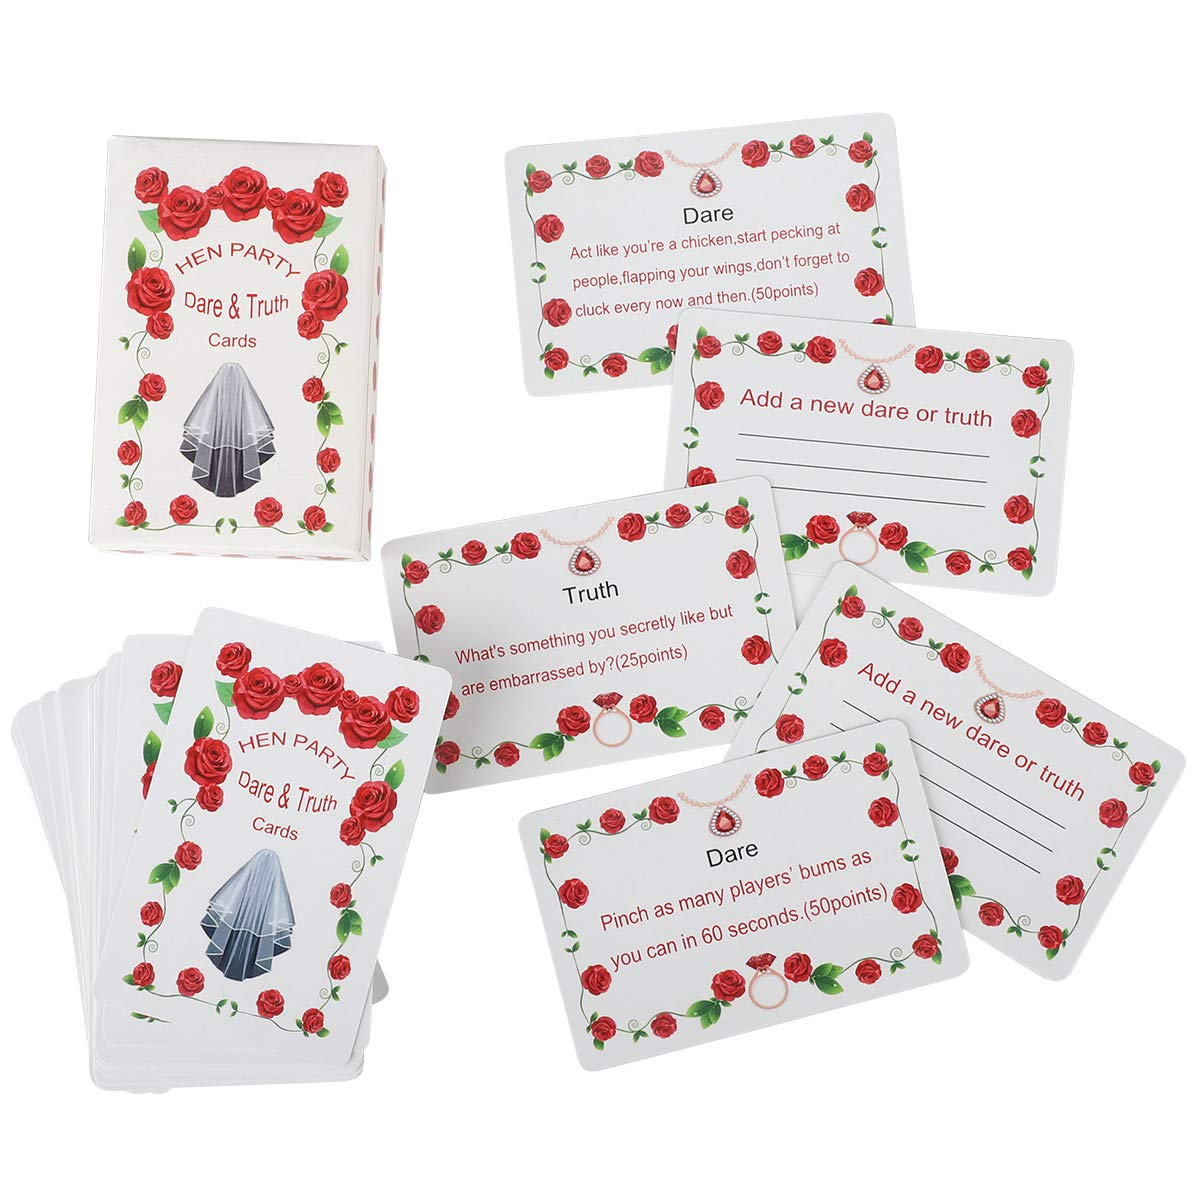 Girls Hen Night Out Party Games- Dare&Truth Cards, Hilarious Fiendishly Filthy Hen Party Ice Breaking Game Adults Team Bride To Be Bridal Shower Leisure, Hen Do Night Party Bingo Fun Games(52 Cards)